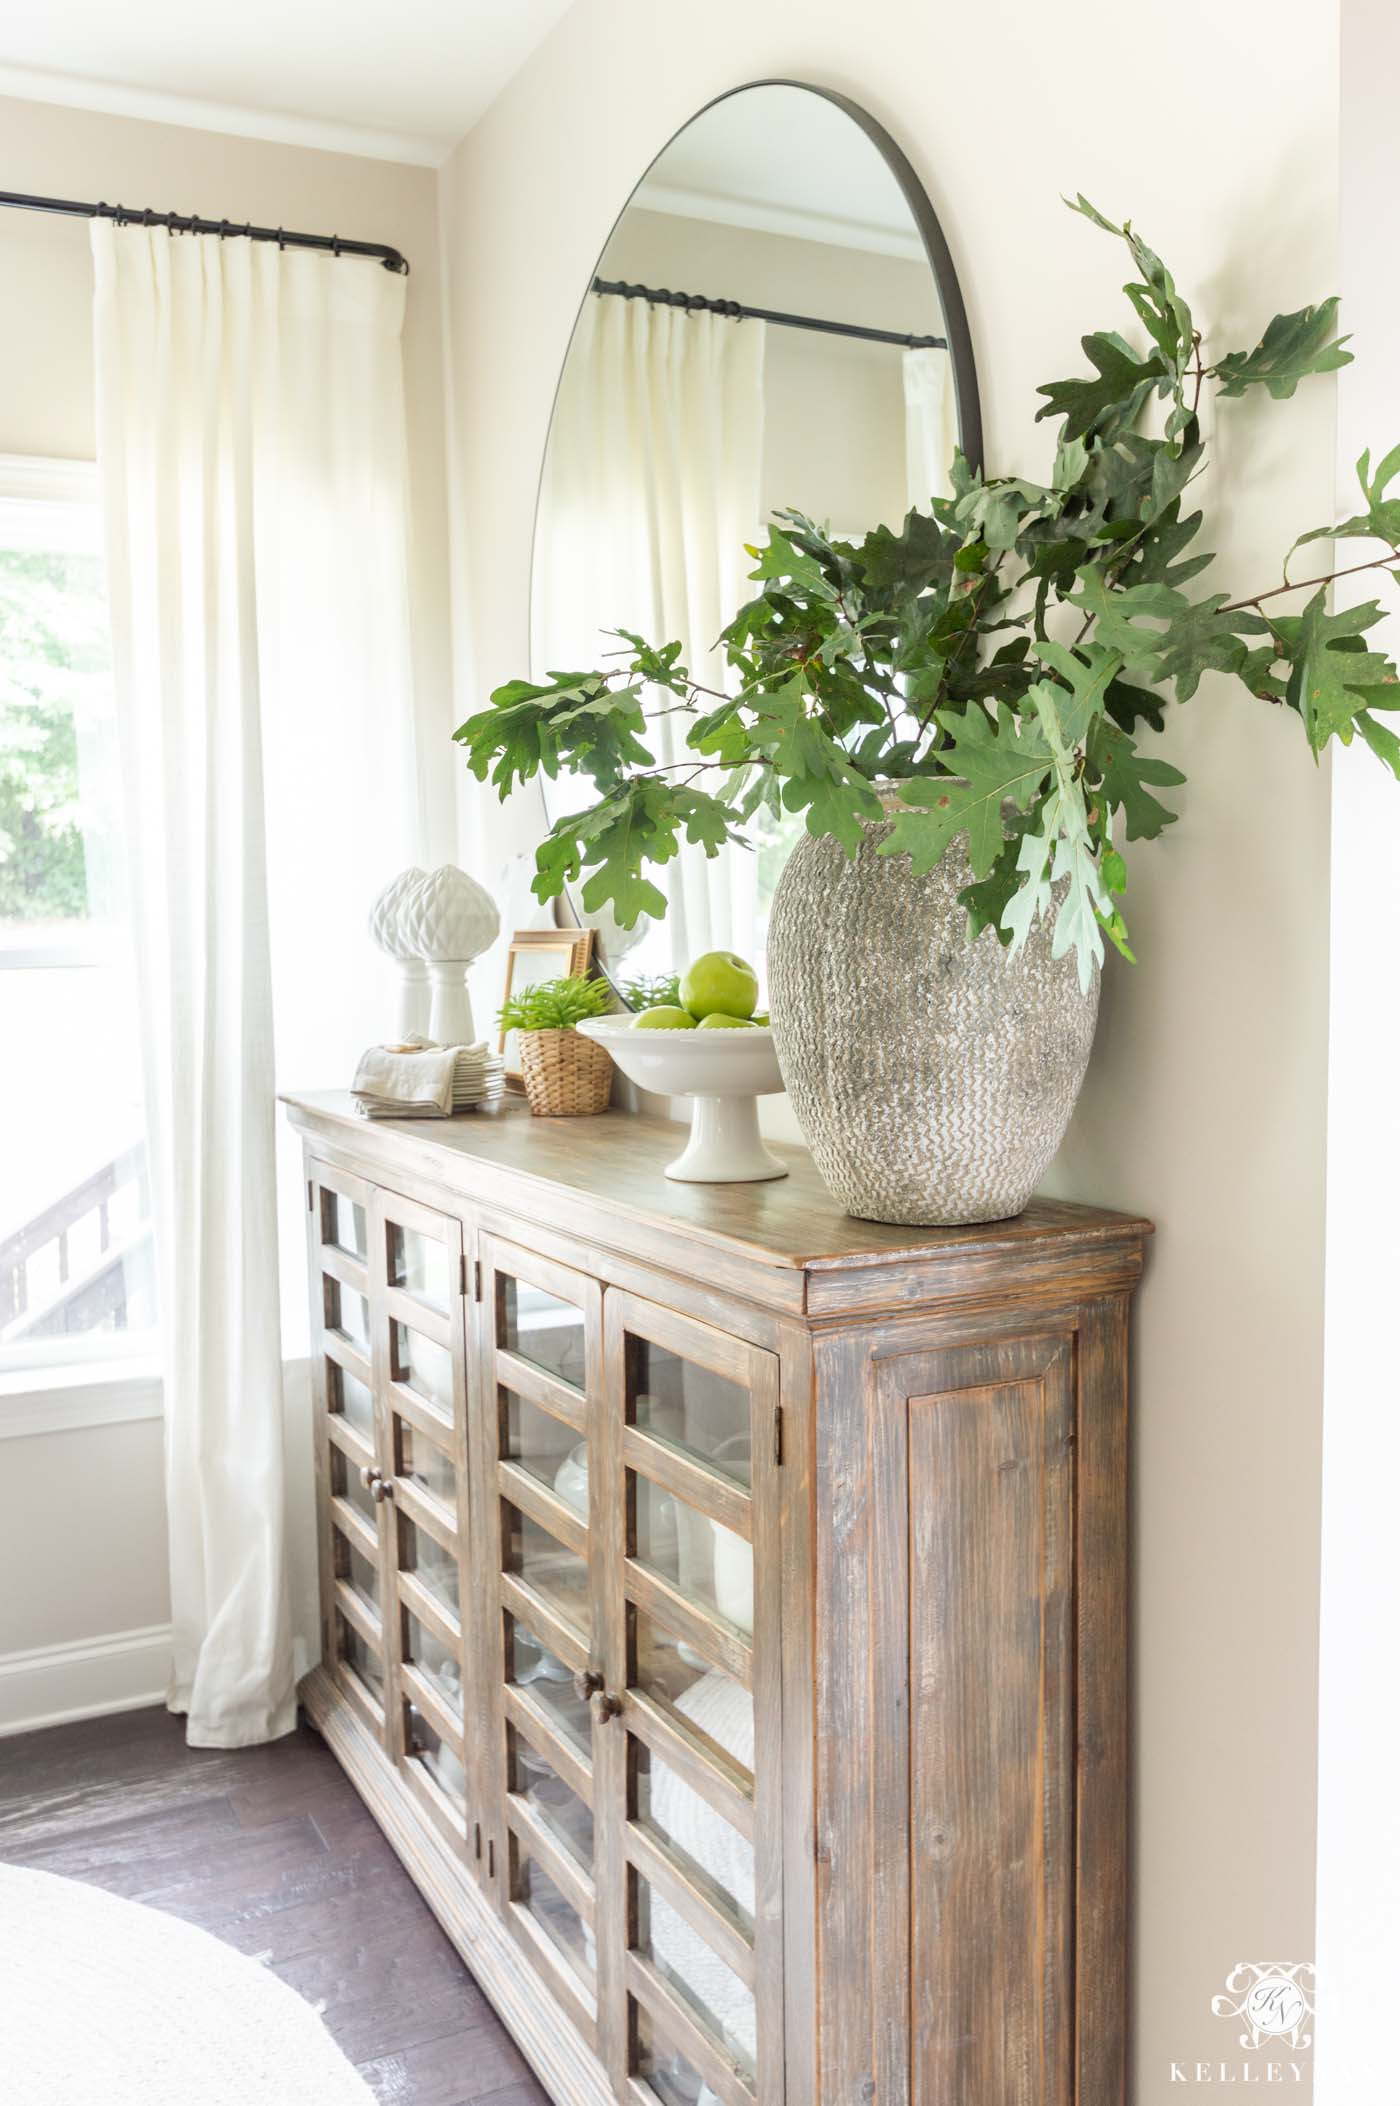 Green Fall Foliage Arrangements for Early Fall Home Decor